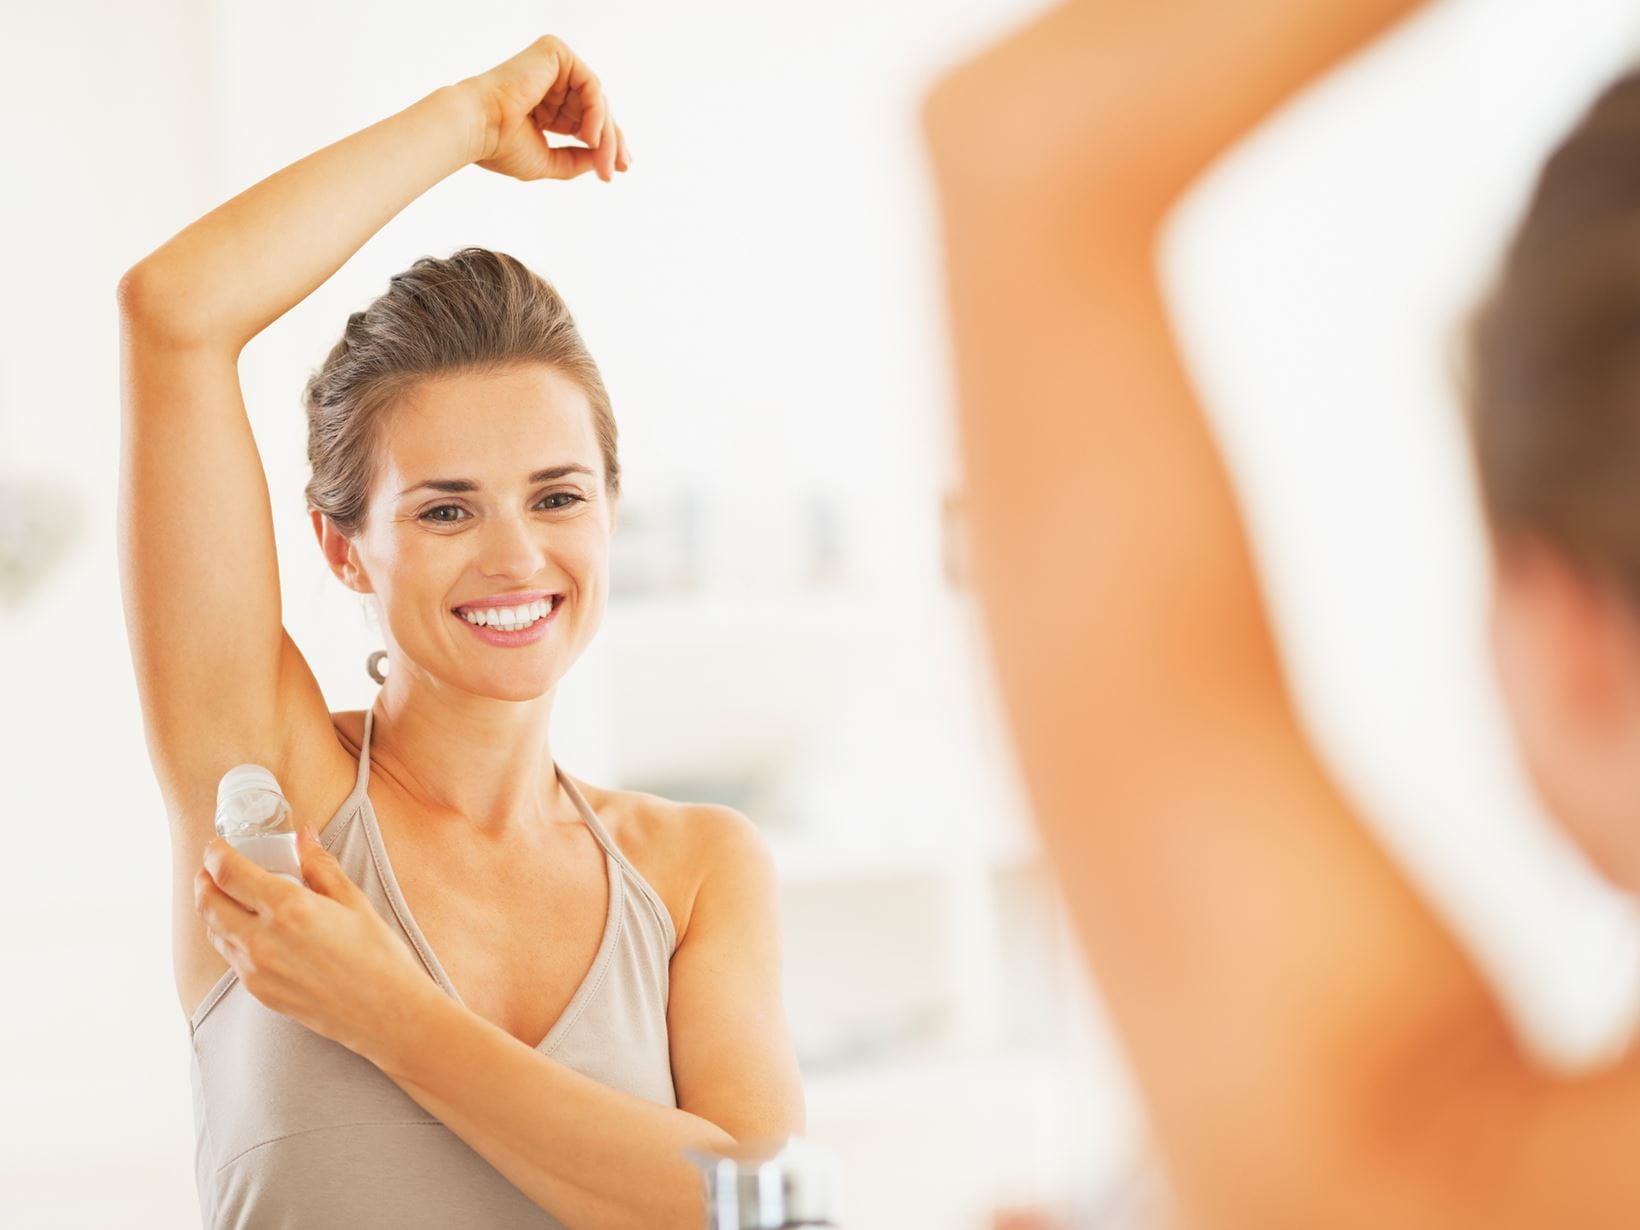 woman applying deodorant to stop excessive sweating